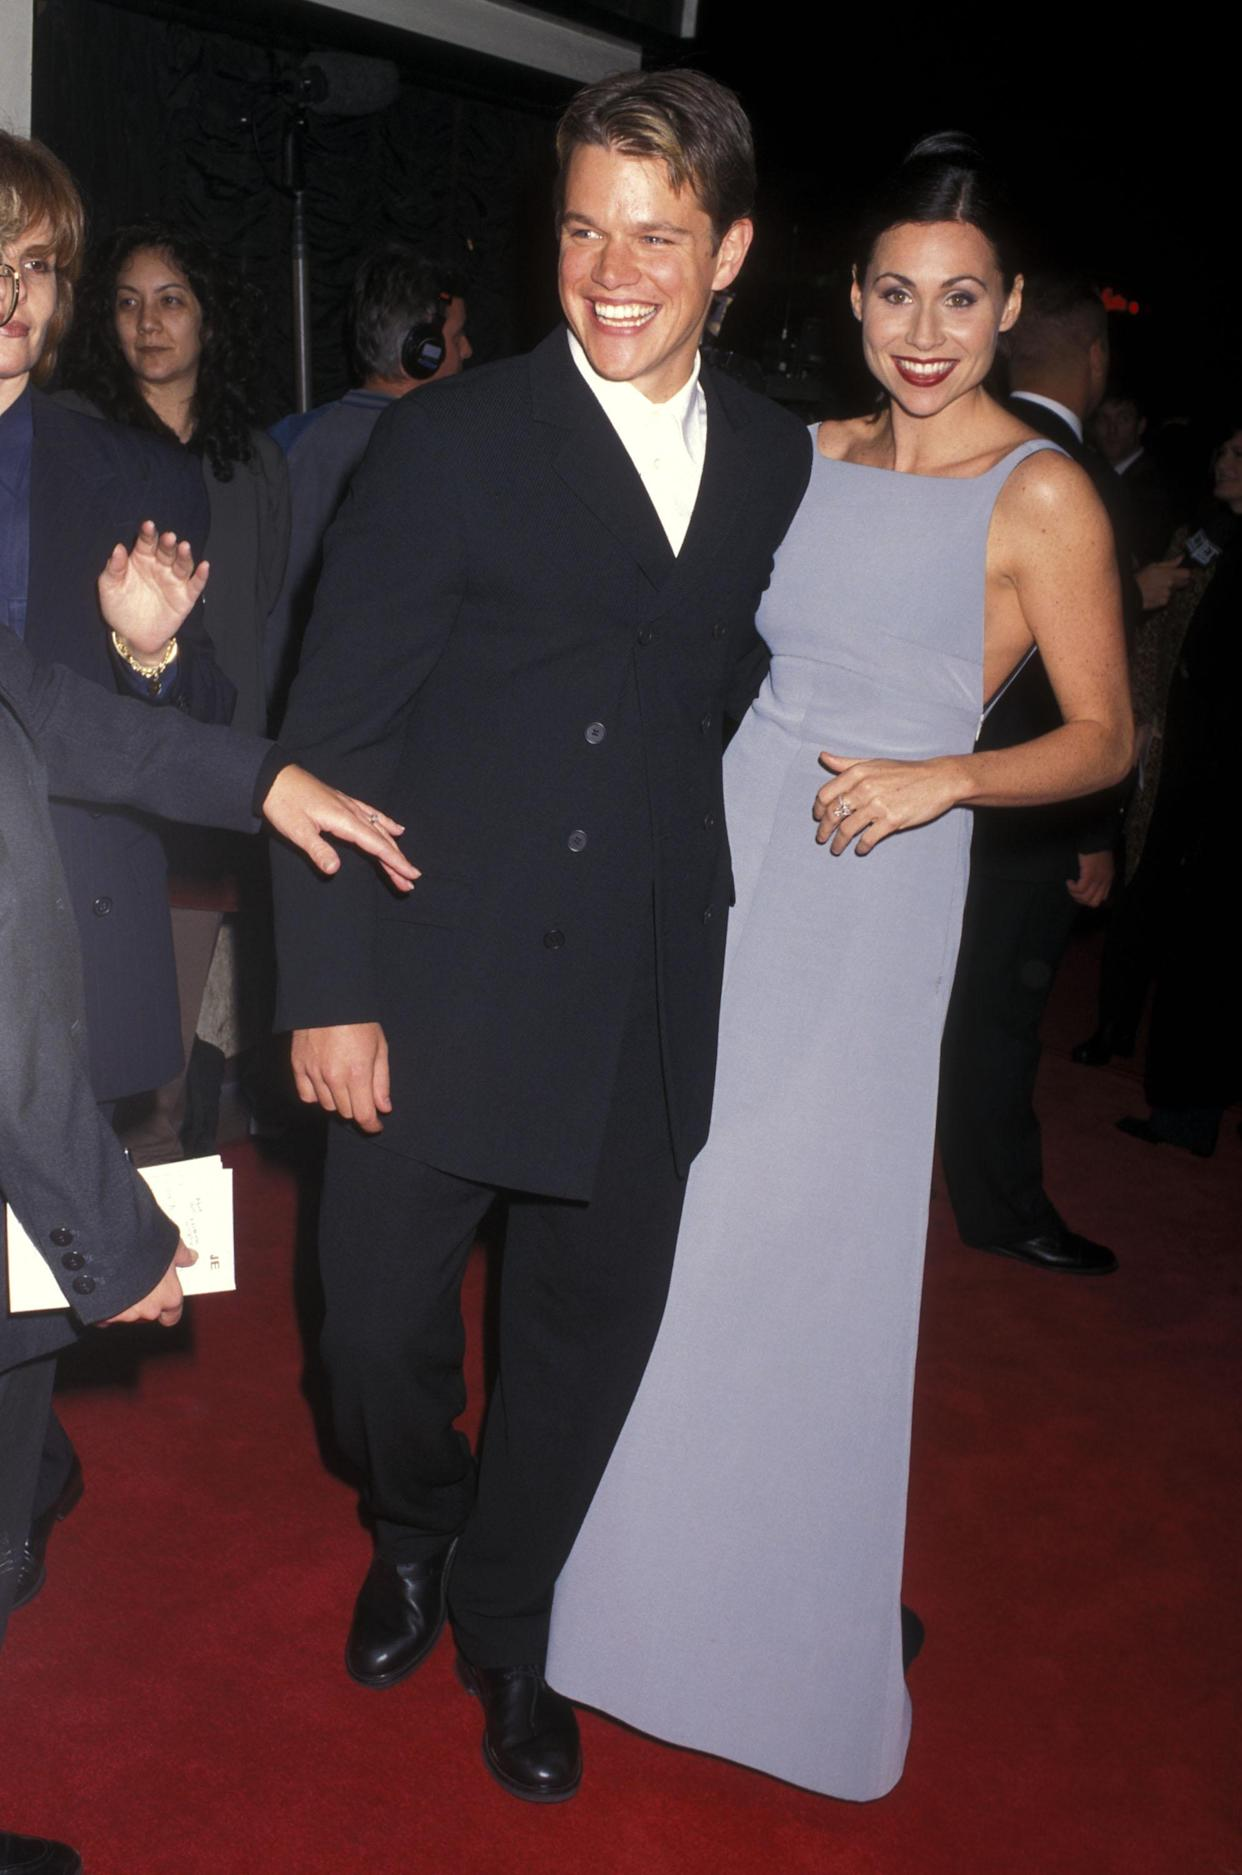 Matt Damon and Minnie Driver together at the Good Will Hunting premiere in December 1997.